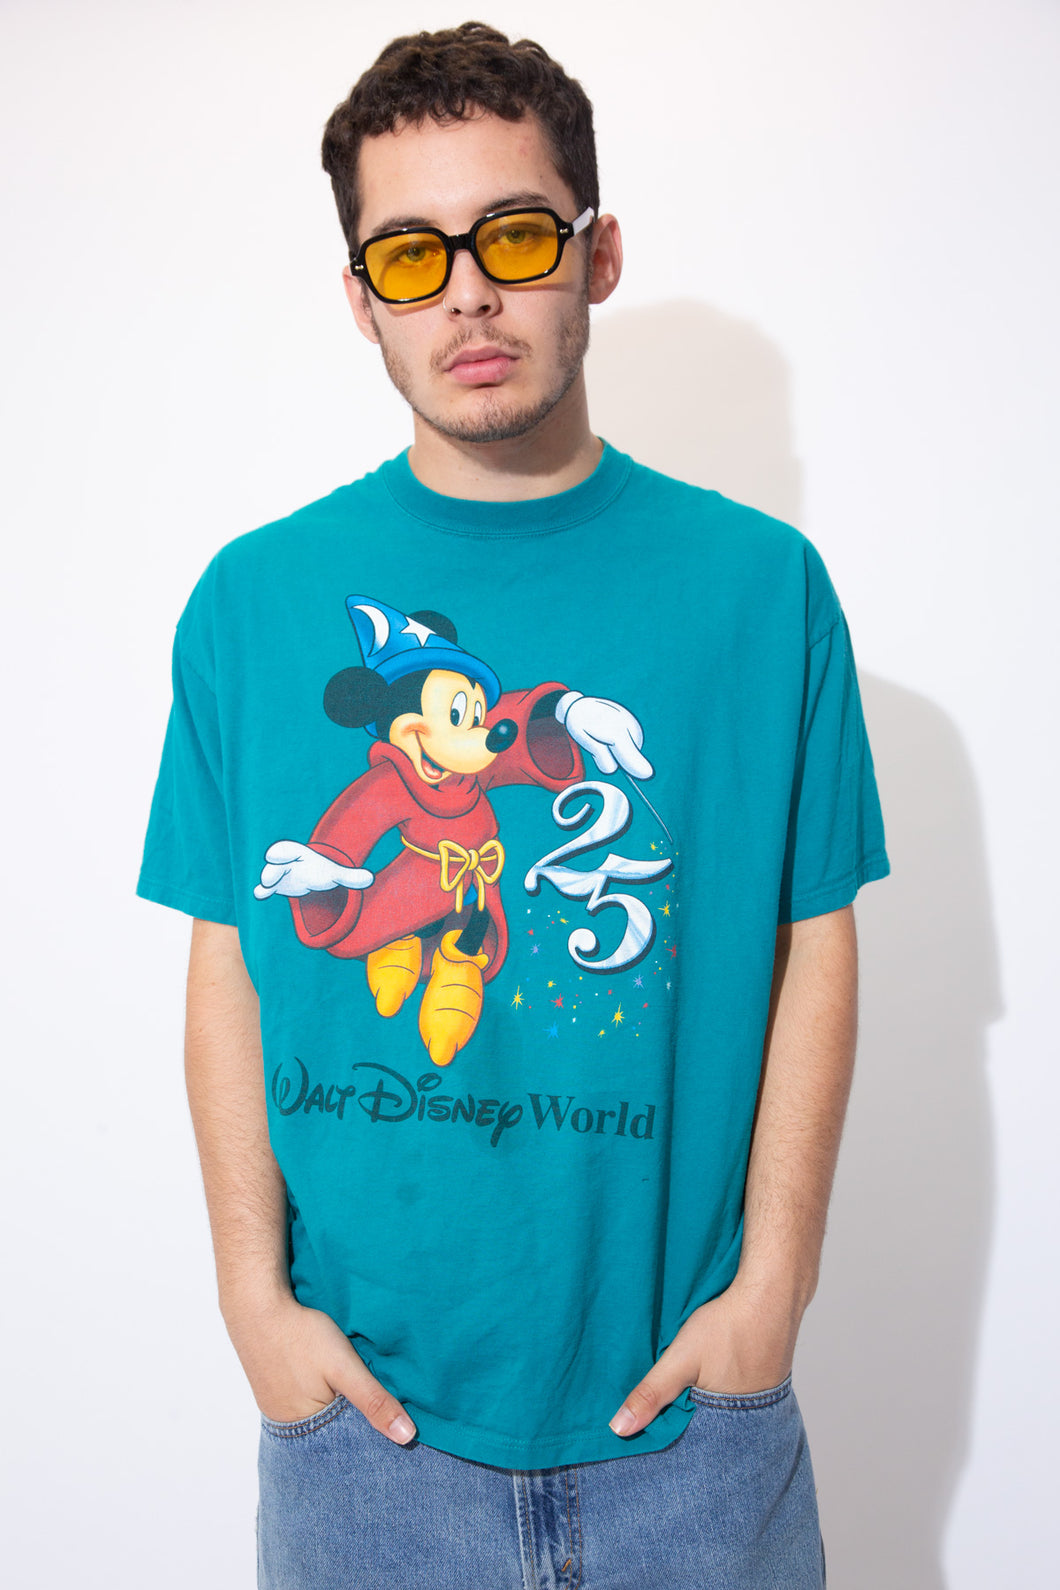 Turquoise tee with a large Mickey Mouse print on the front and Walt Disney World' printed below.